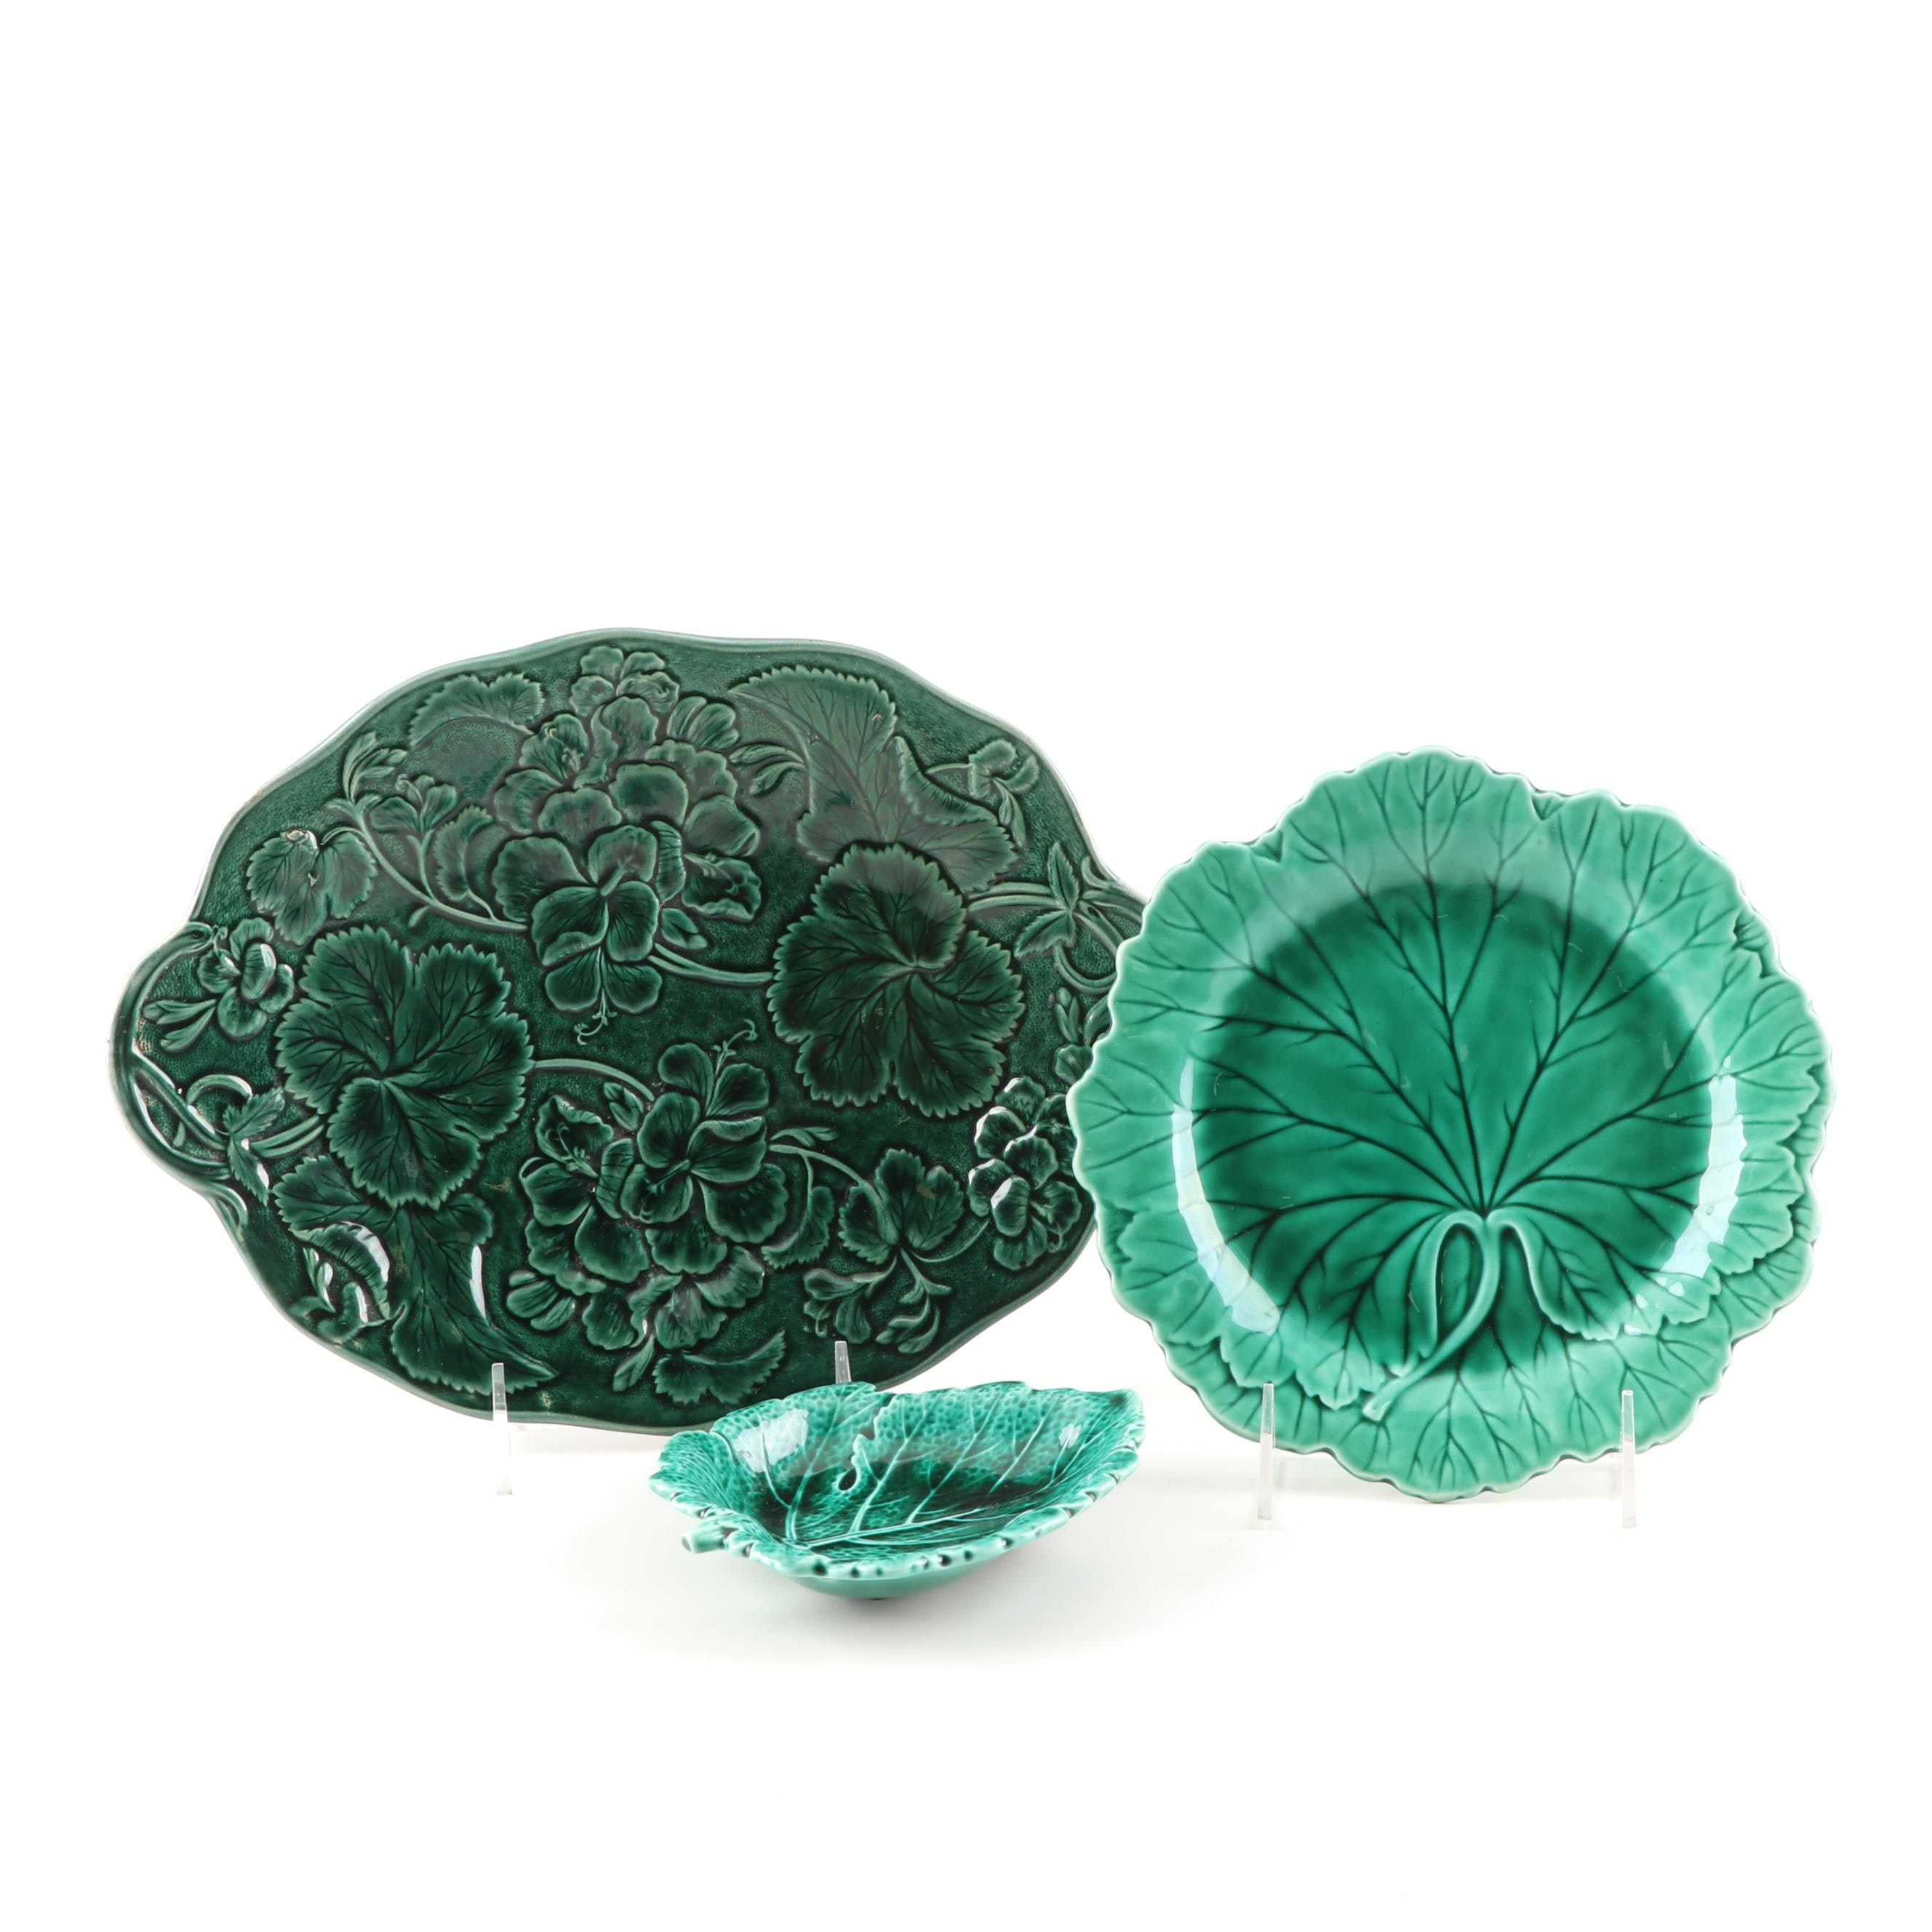 Green Glazed Majolica Leaf Plates Featuring Wedgwood